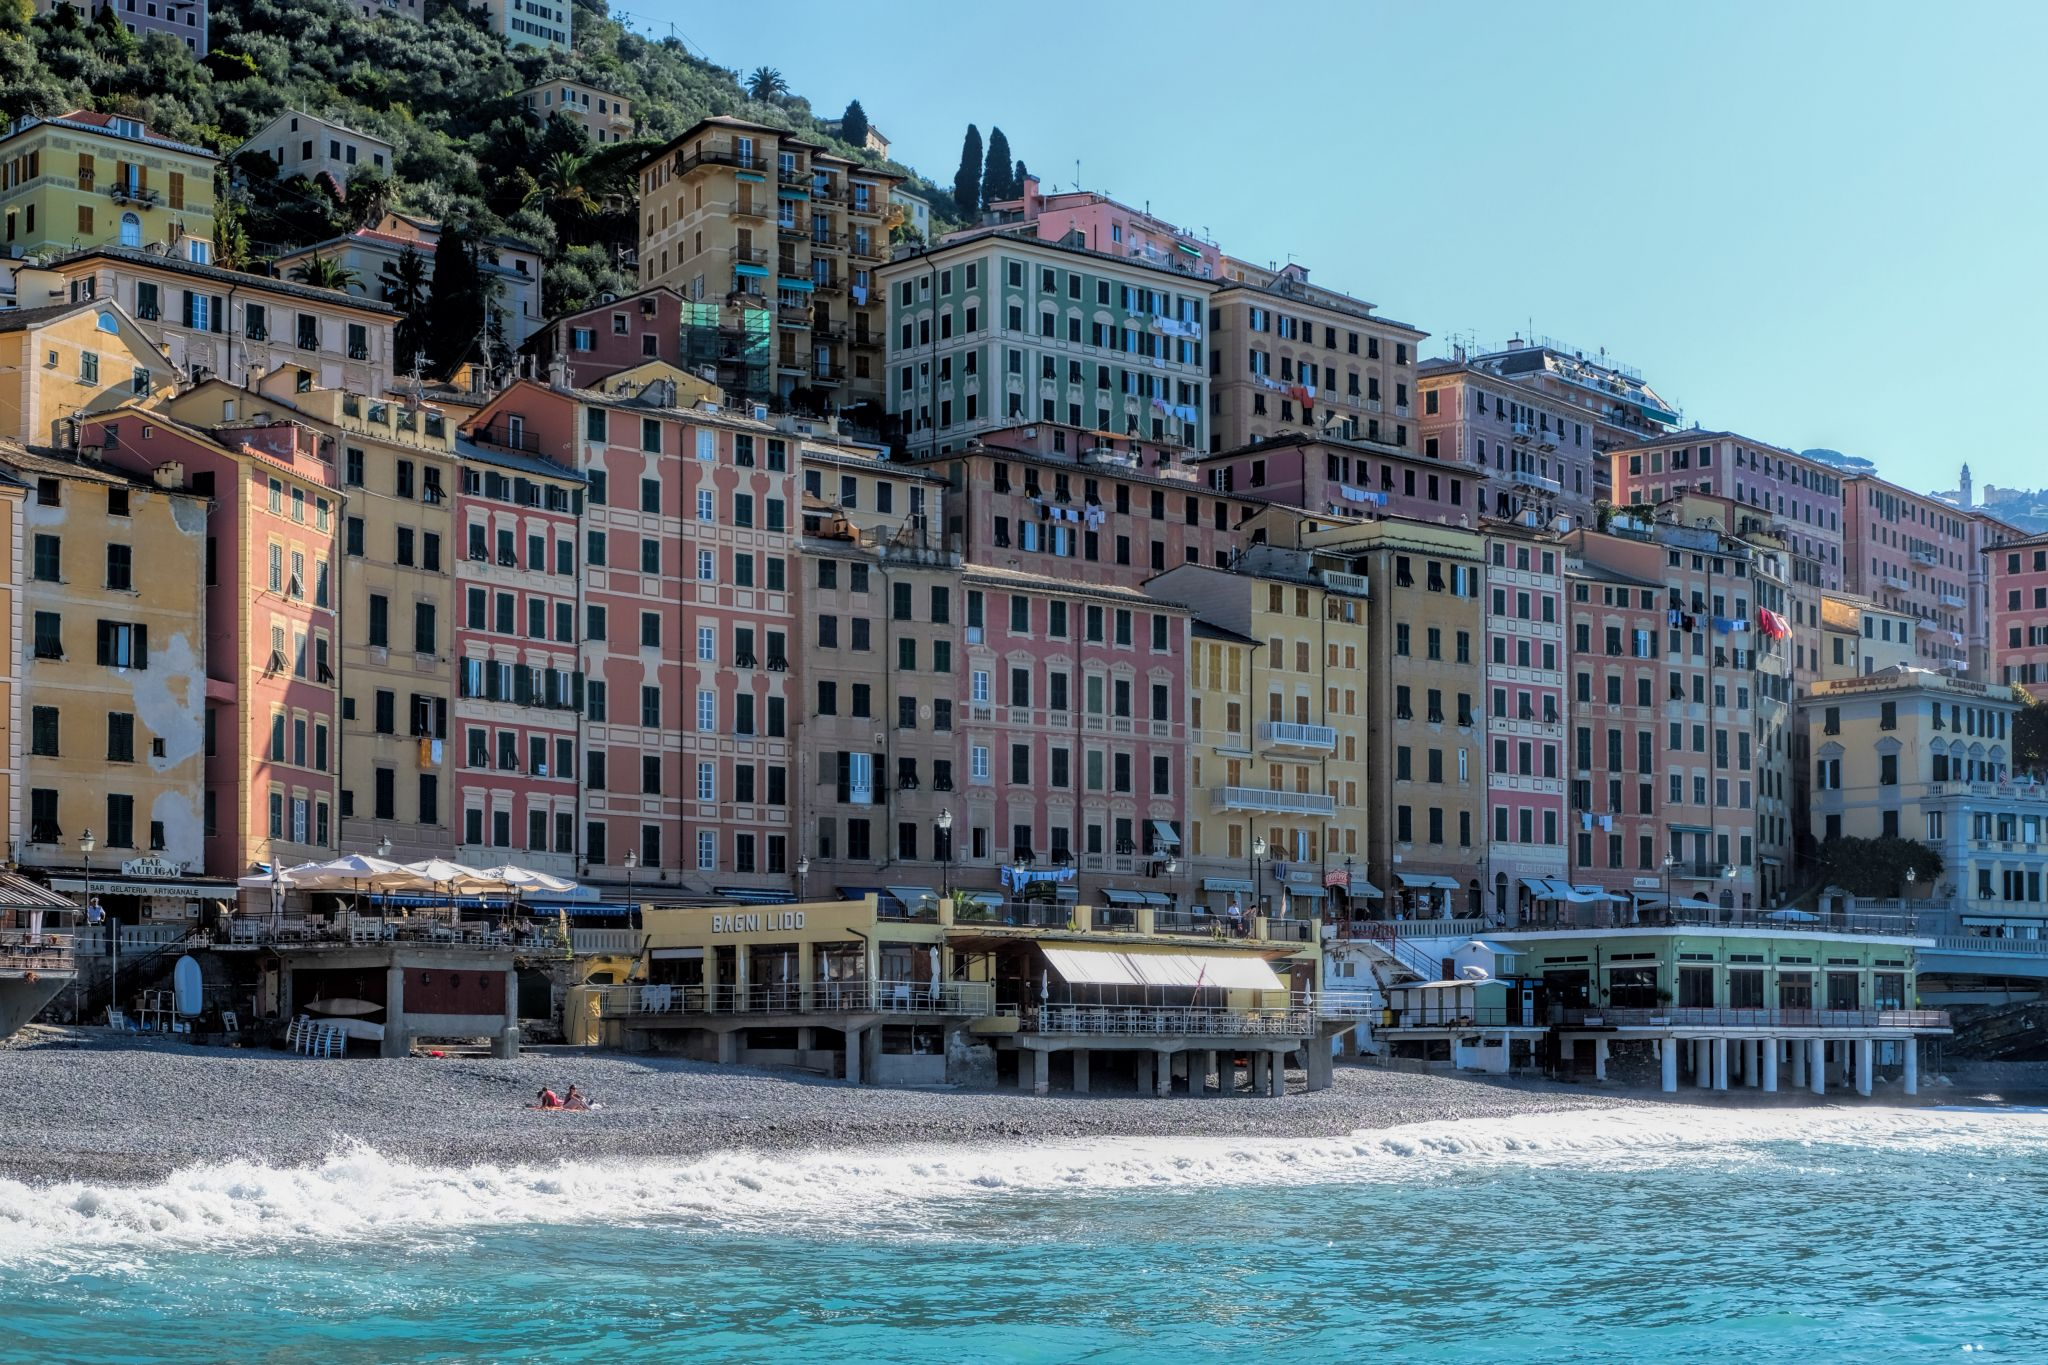 Beach of Camogli, Italy